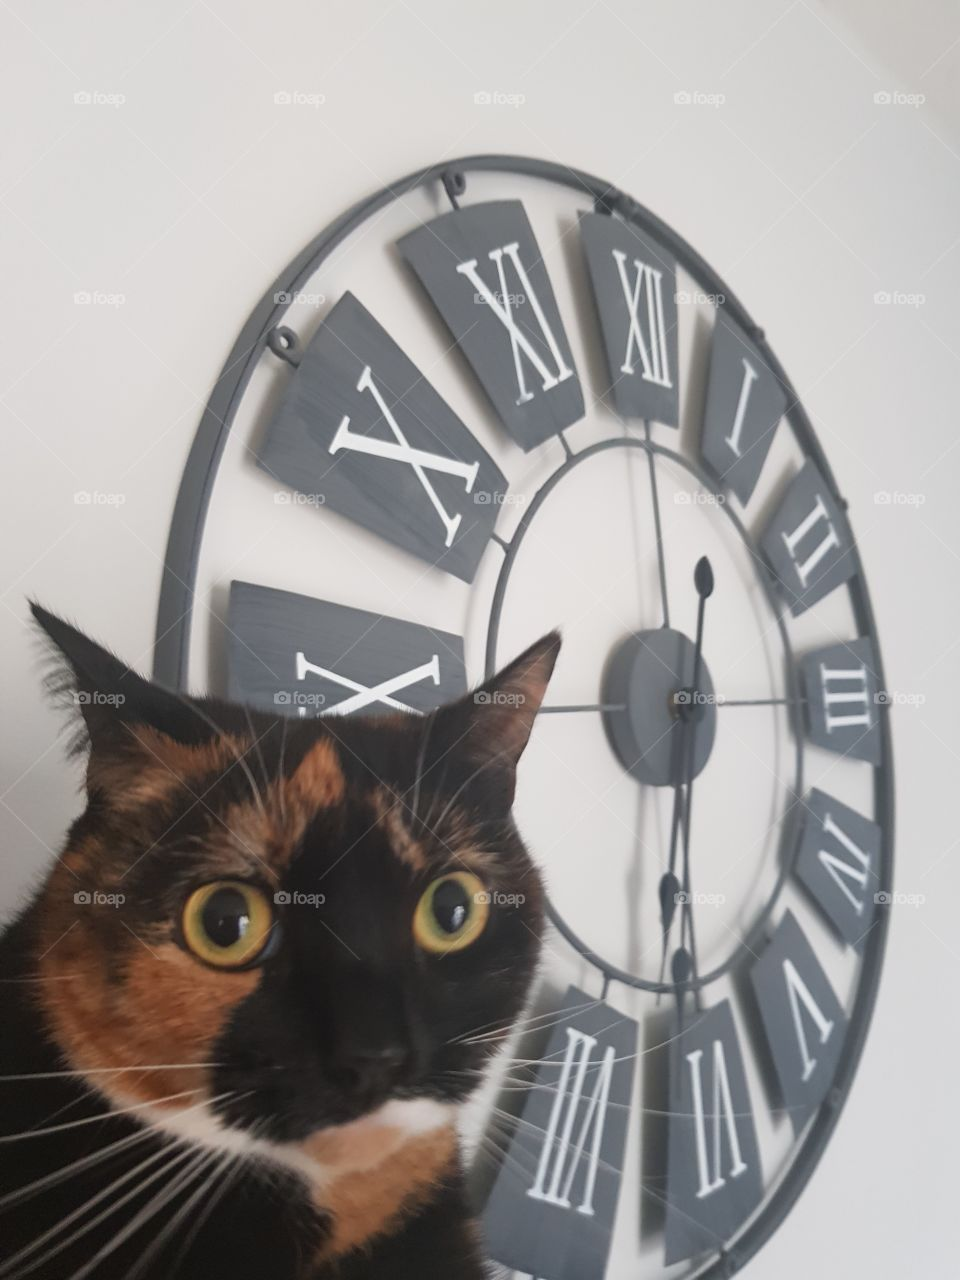 When you remember the clocks have gone forward!